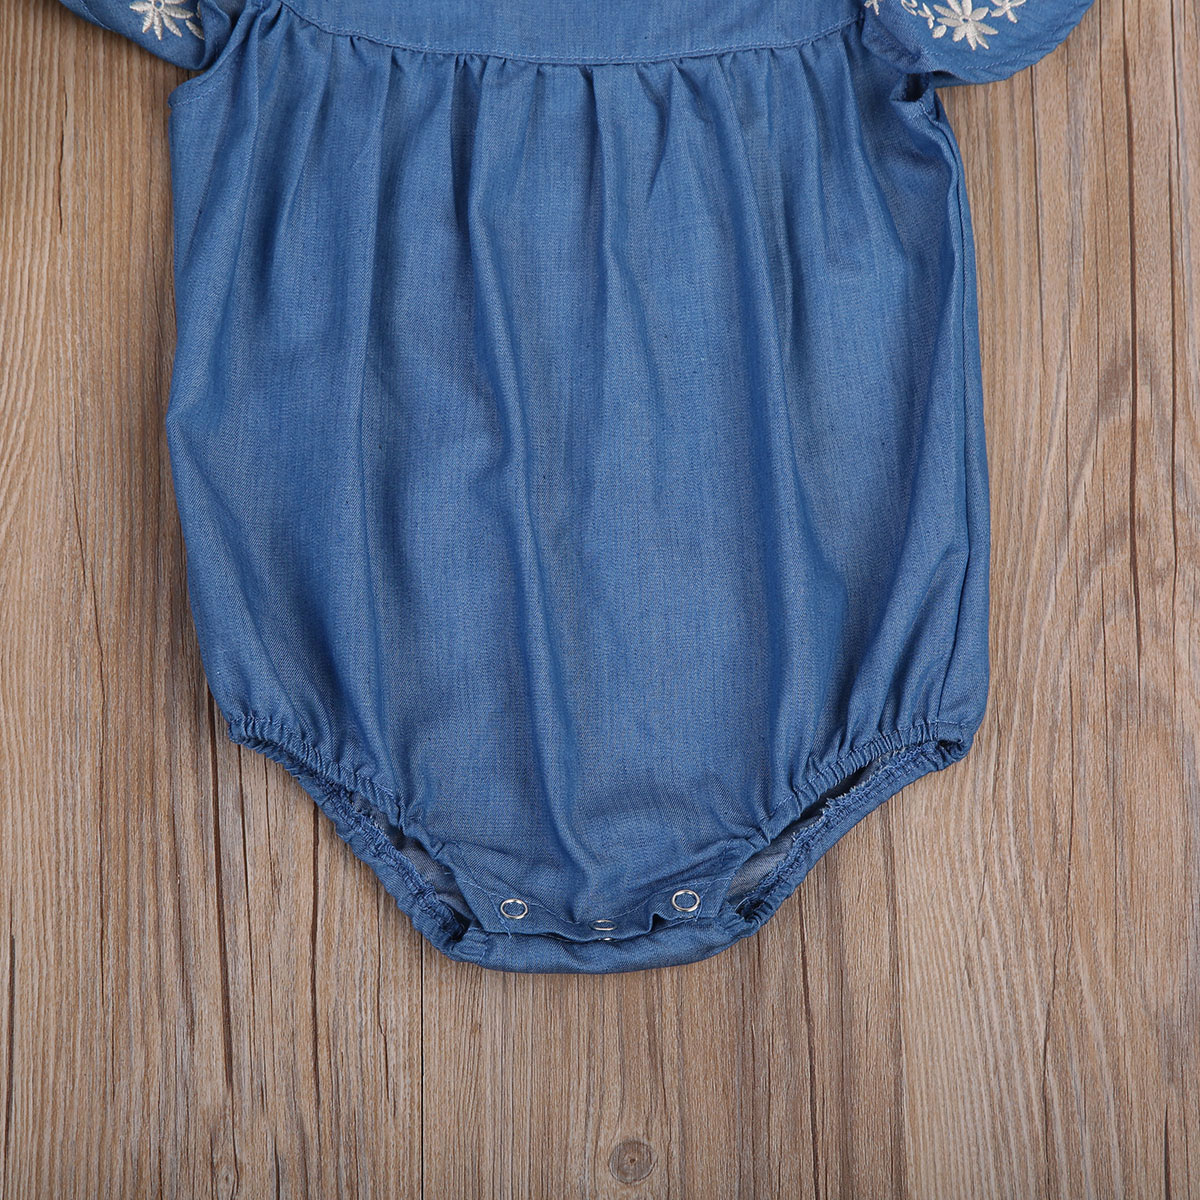 Flying Sleeve Baby Clothing Newborn Baby Girls Denim Romper Jumpsuit Outfits Sunsuit Clothes 0 24M Flying Sleeve Baby Clothing Newborn Baby Girls Denim Romper Jumpsuit Outfits Sunsuit Clothes 0-24M